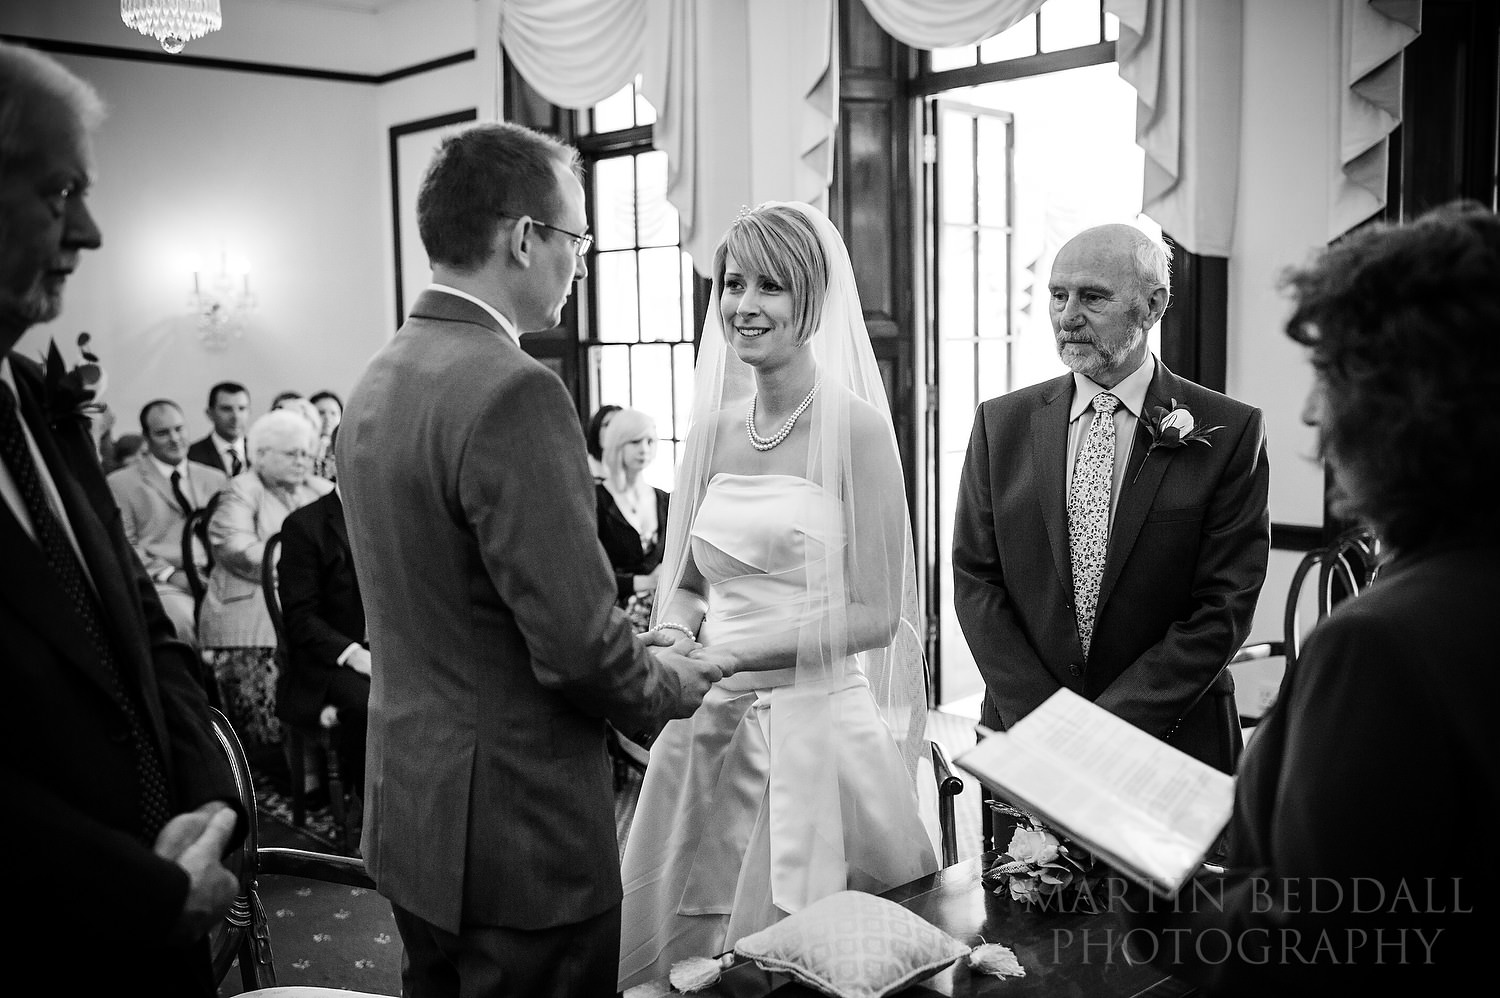 Wedding ceremony at The Mansion Leatherhead Registry Office